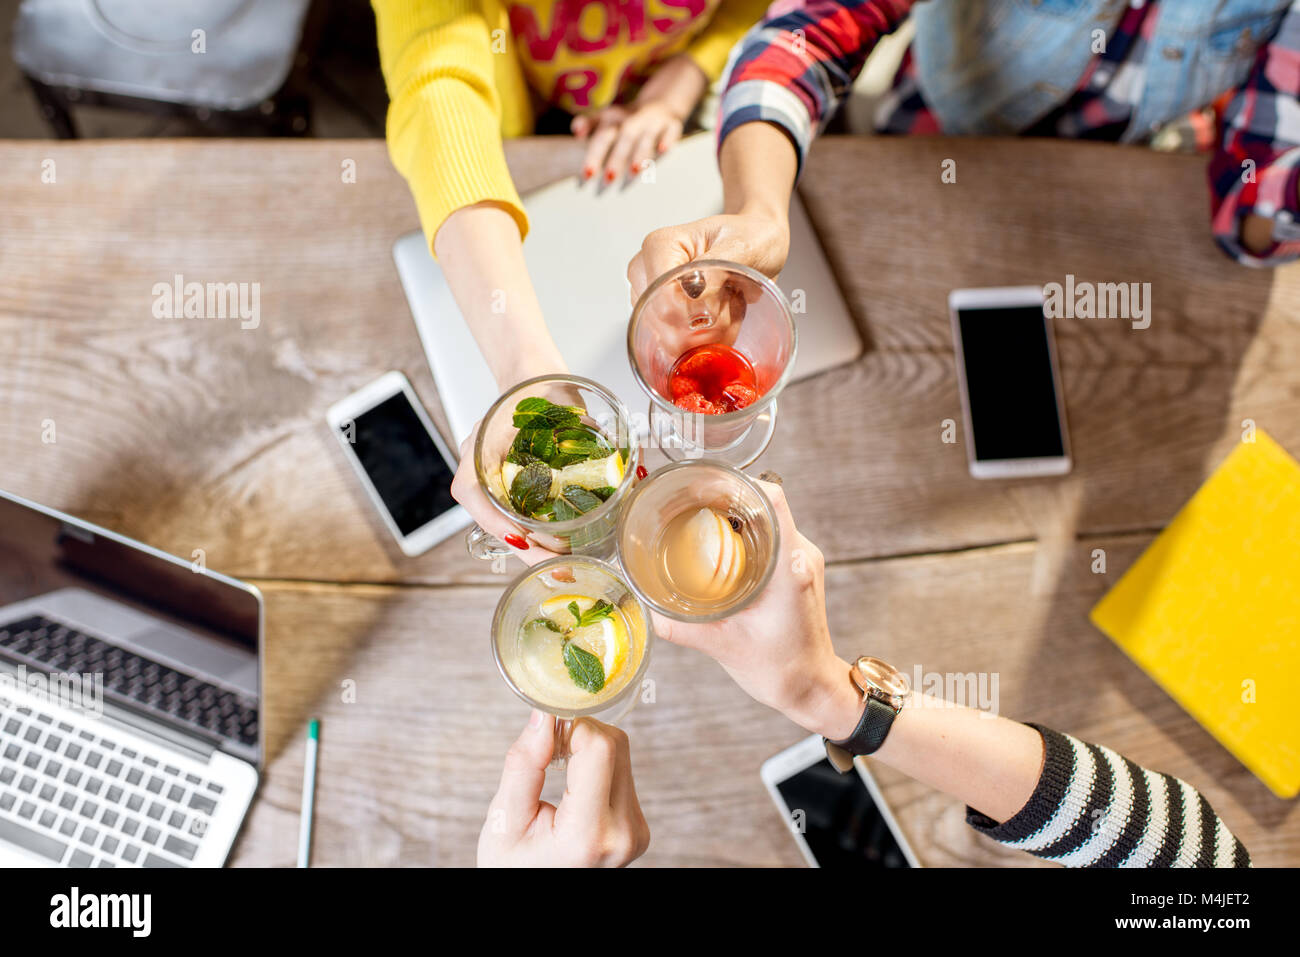 Clinking glasses with teas - Stock Image